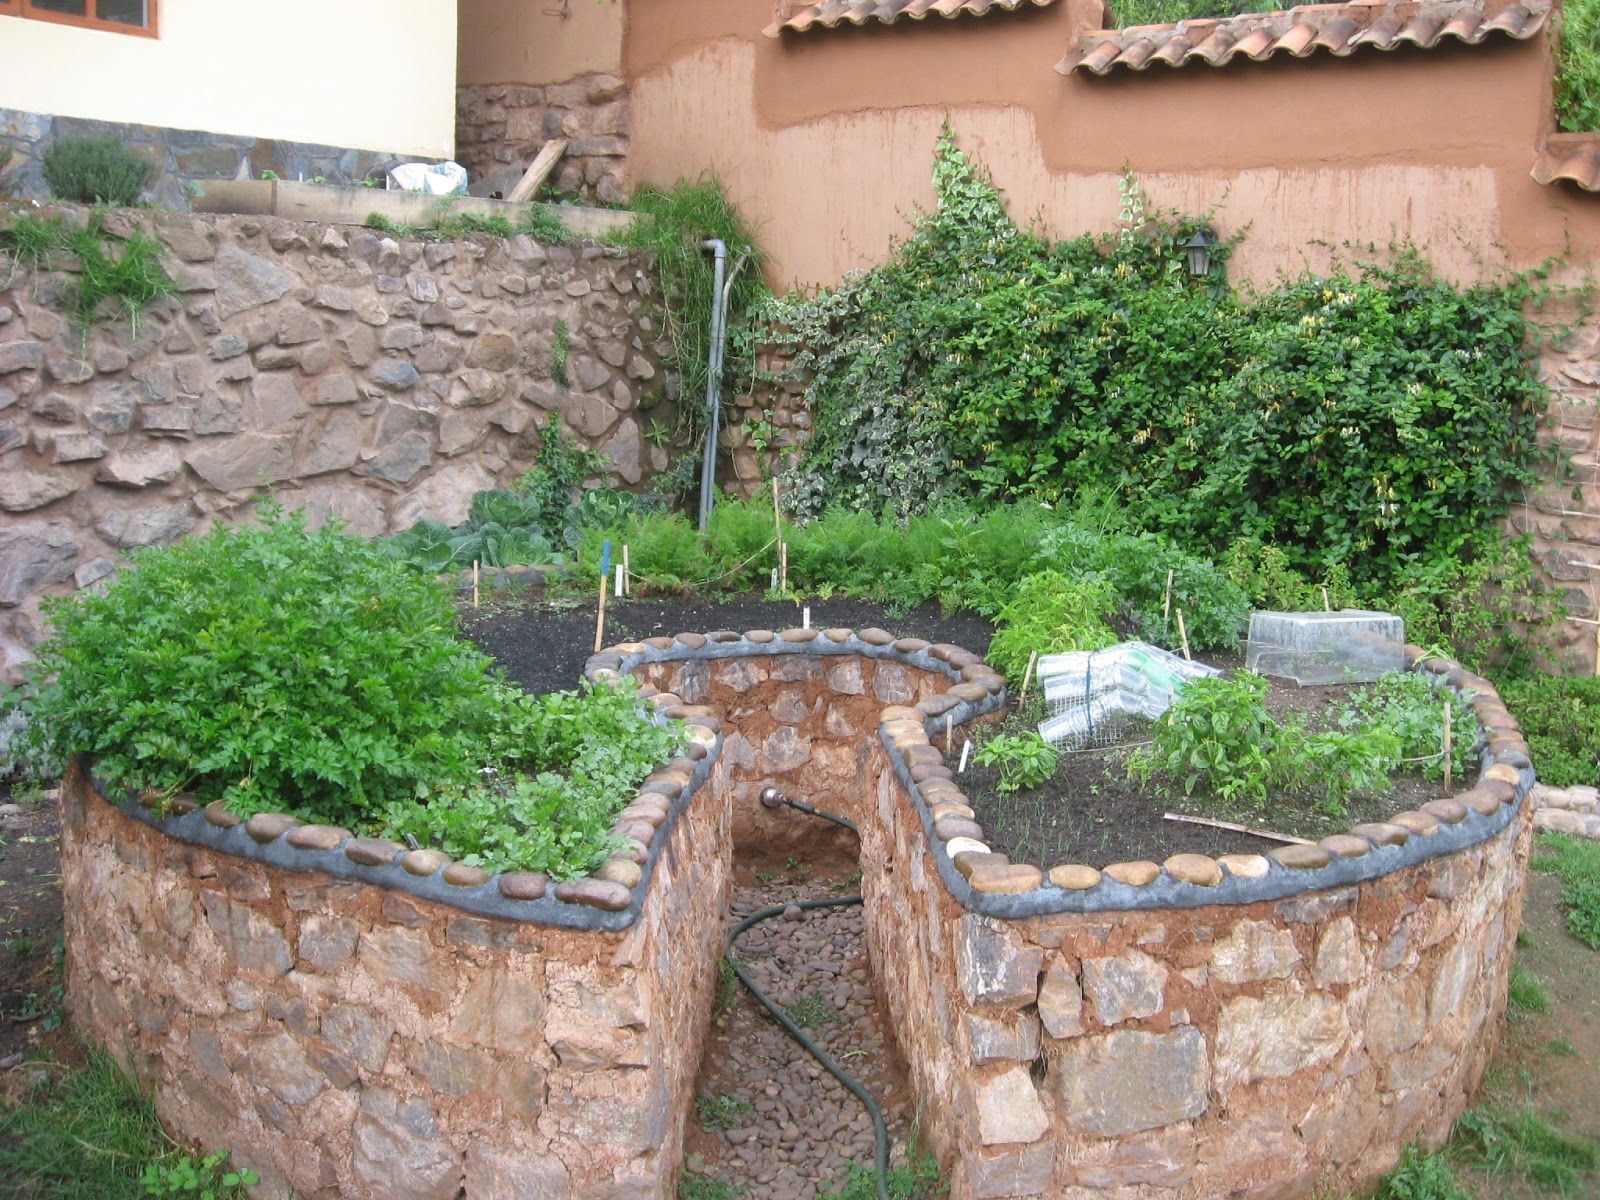 Permaculture Farming Keyhole Raised Bed Gardens Are Great Ergonomic Ease From The Vegetable Garden Designgarden Design Ideasvegetables